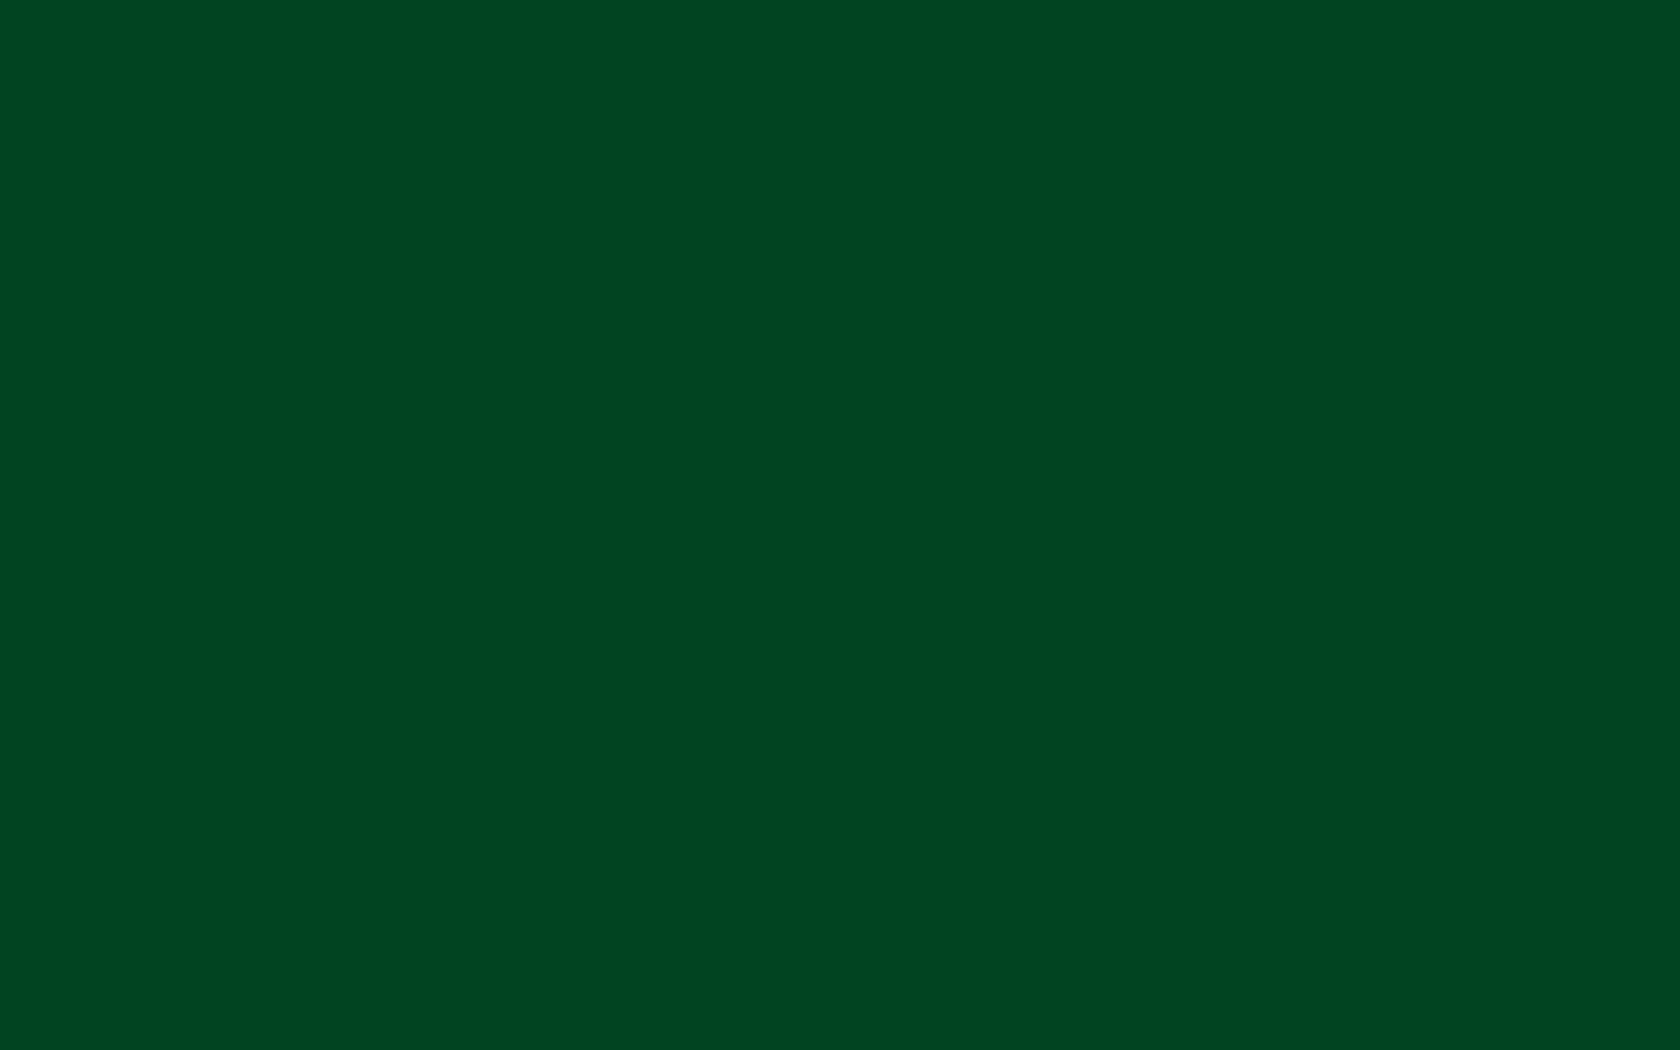 1680x1050 UP Forest Green Solid Color Background